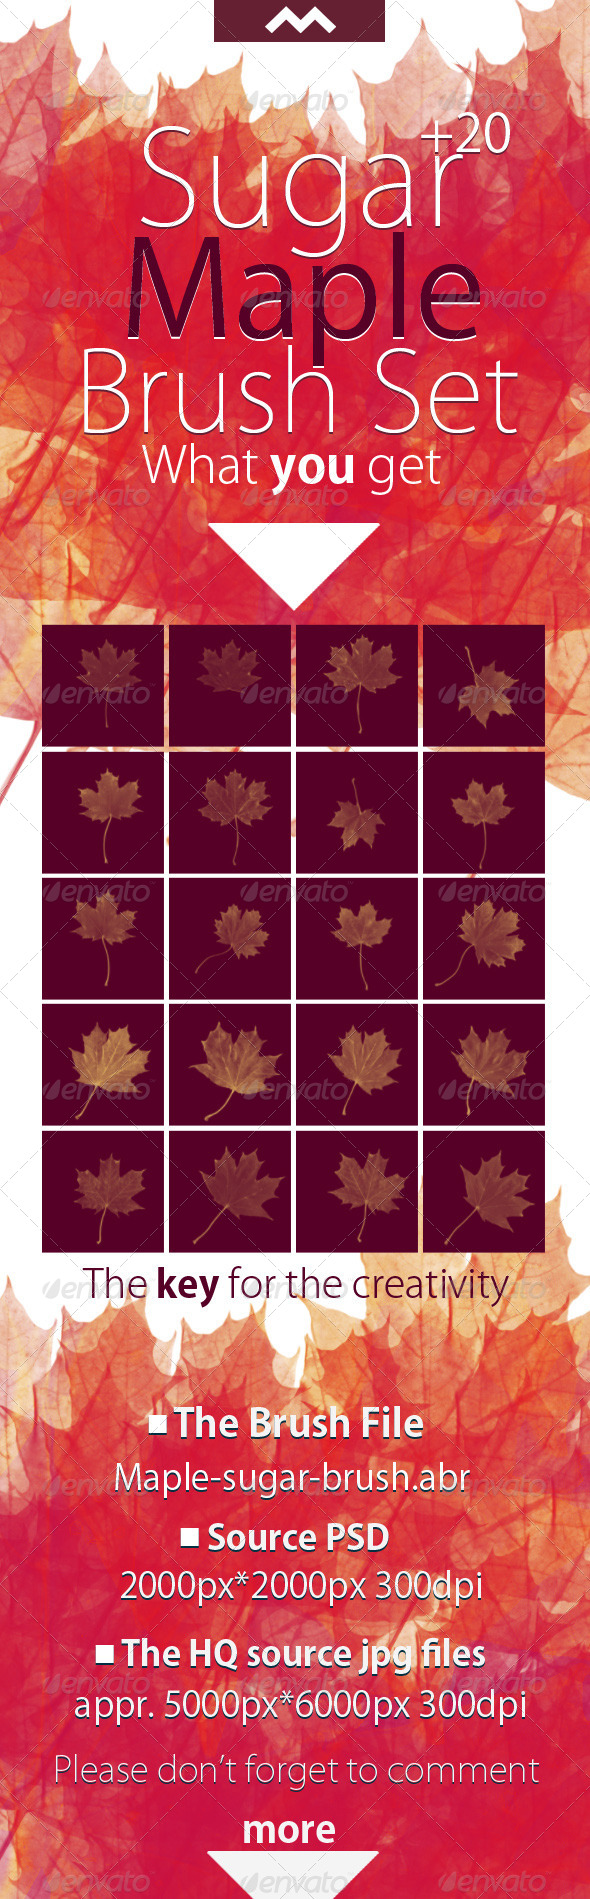 GraphicRiver Sugar Maple Brush With the 20 HQ Leaf Source 6094772